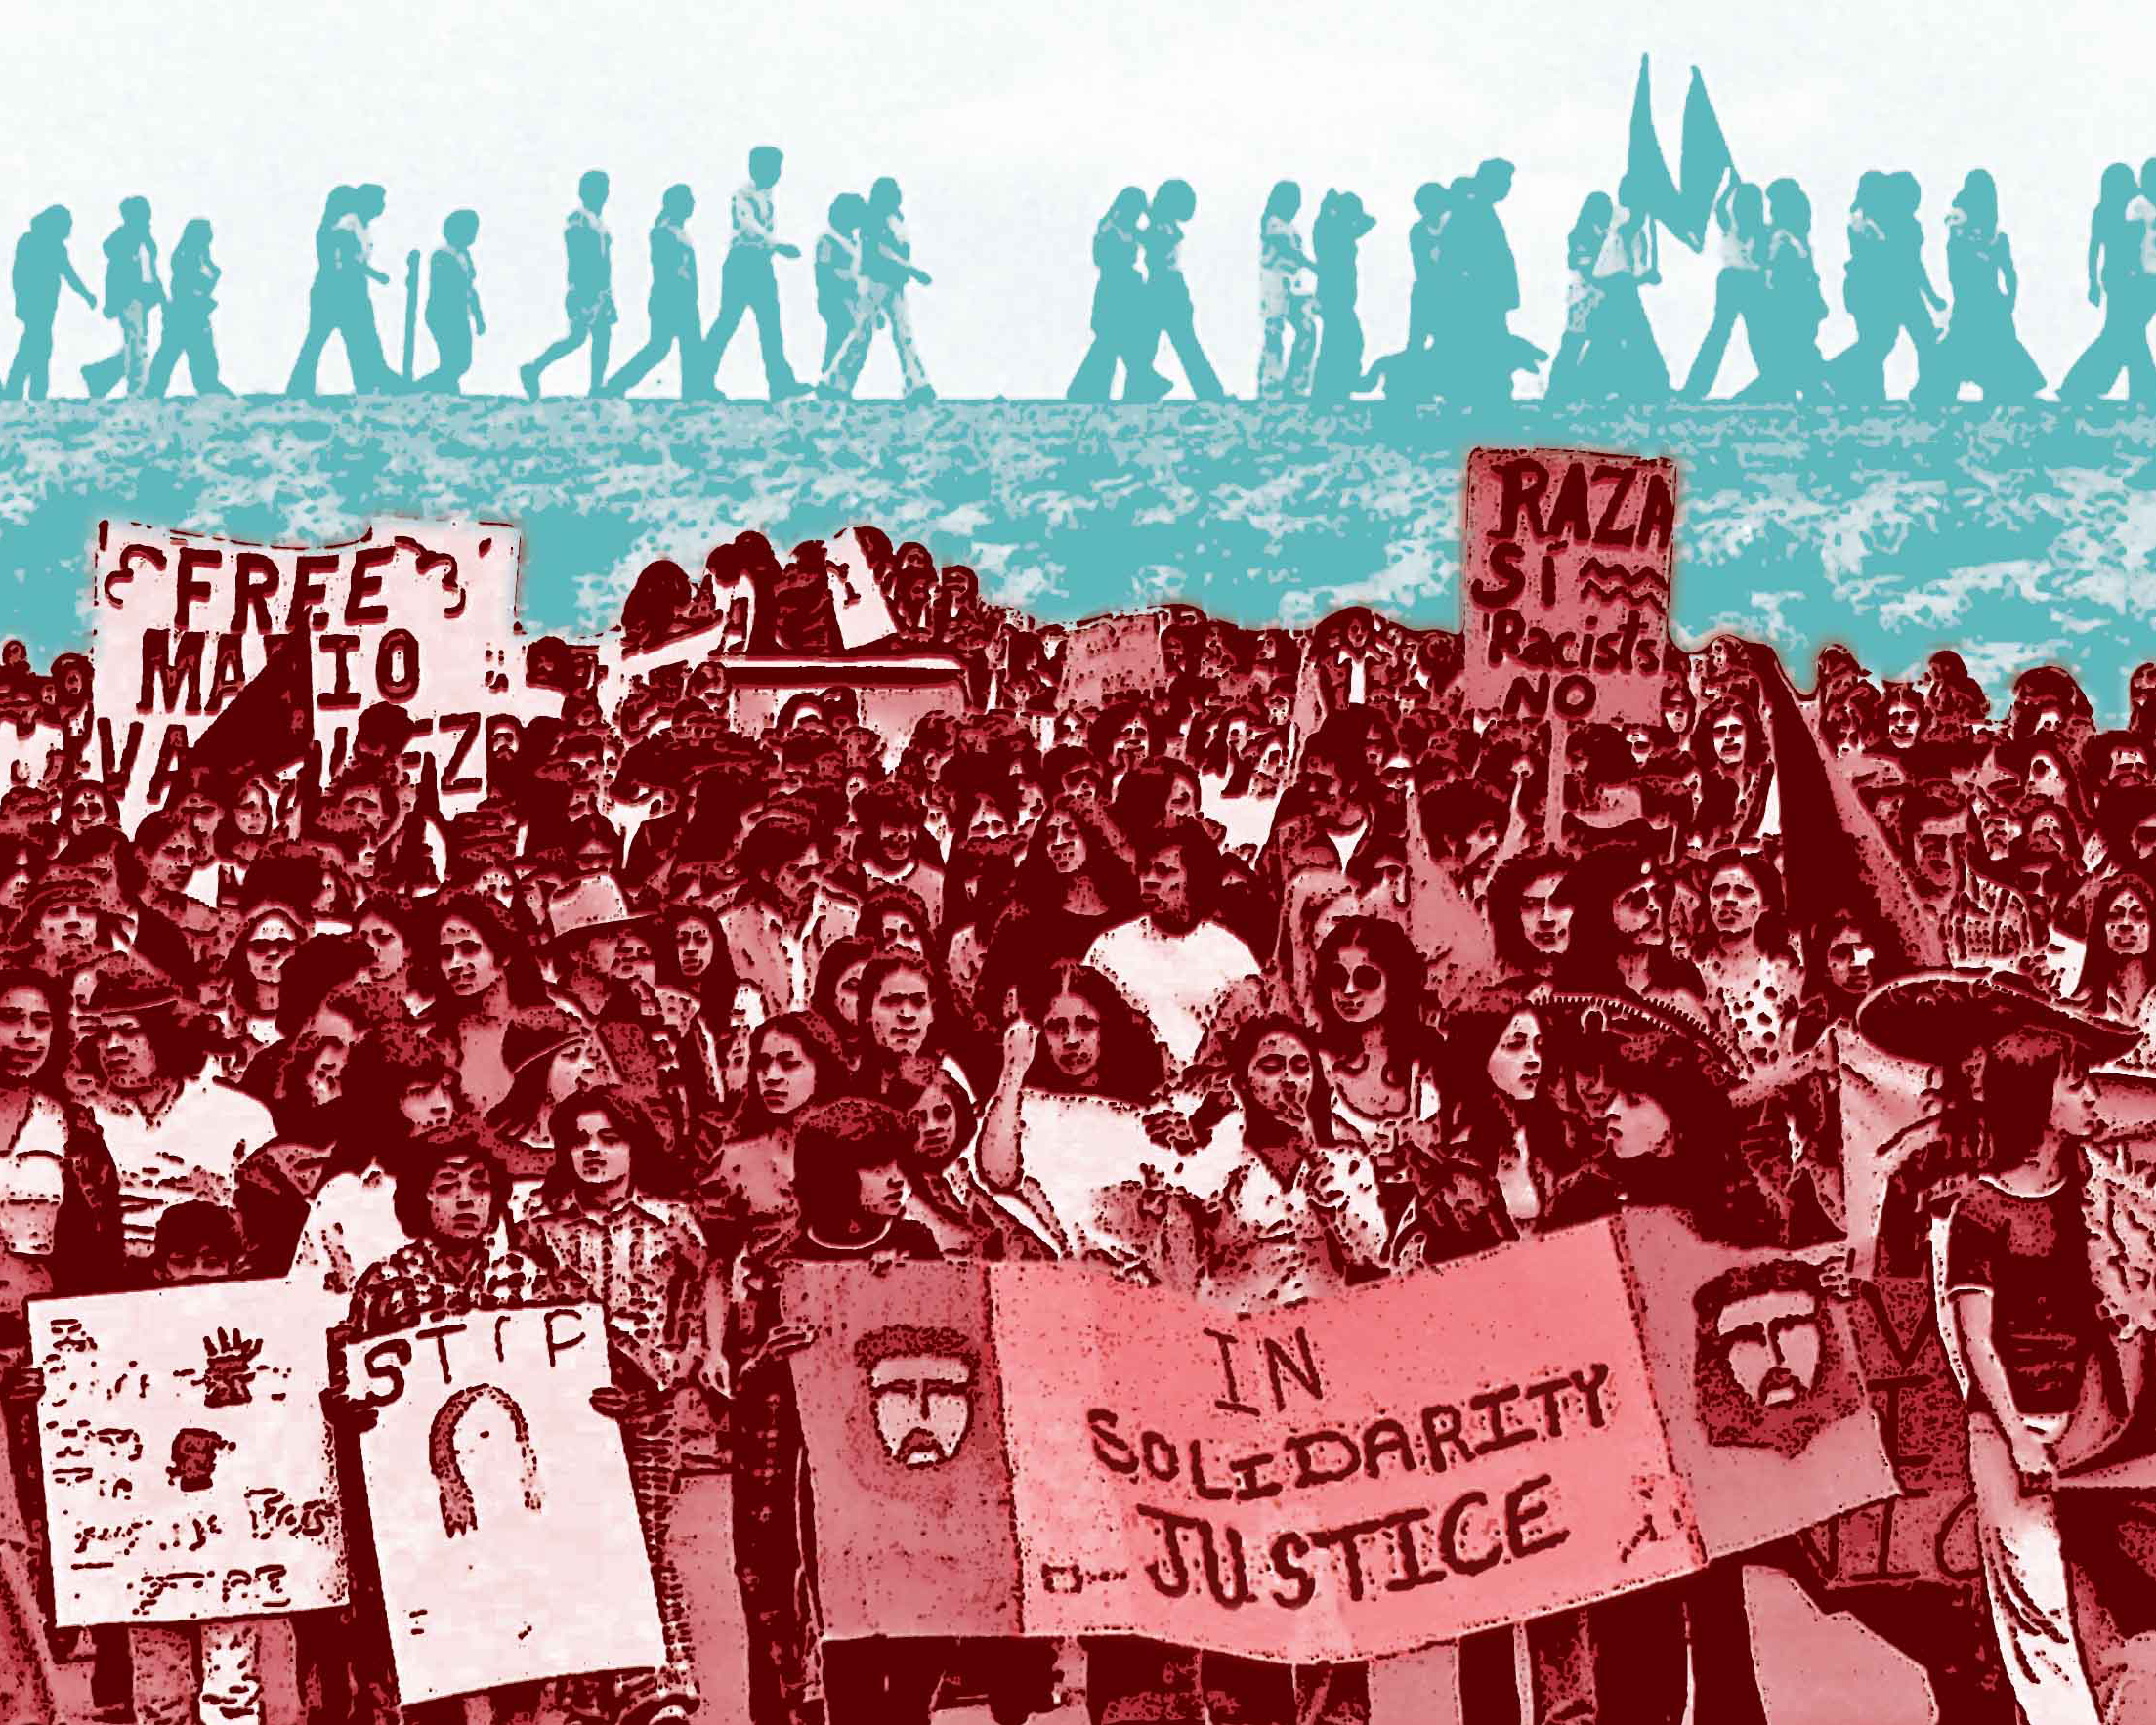 Saturday, 9/29 | 4:00PM - Symbols of Resistance: A Tribute To The Martyrs Of The Chicano@ MovementFreedom Archives, 2017, 75 min